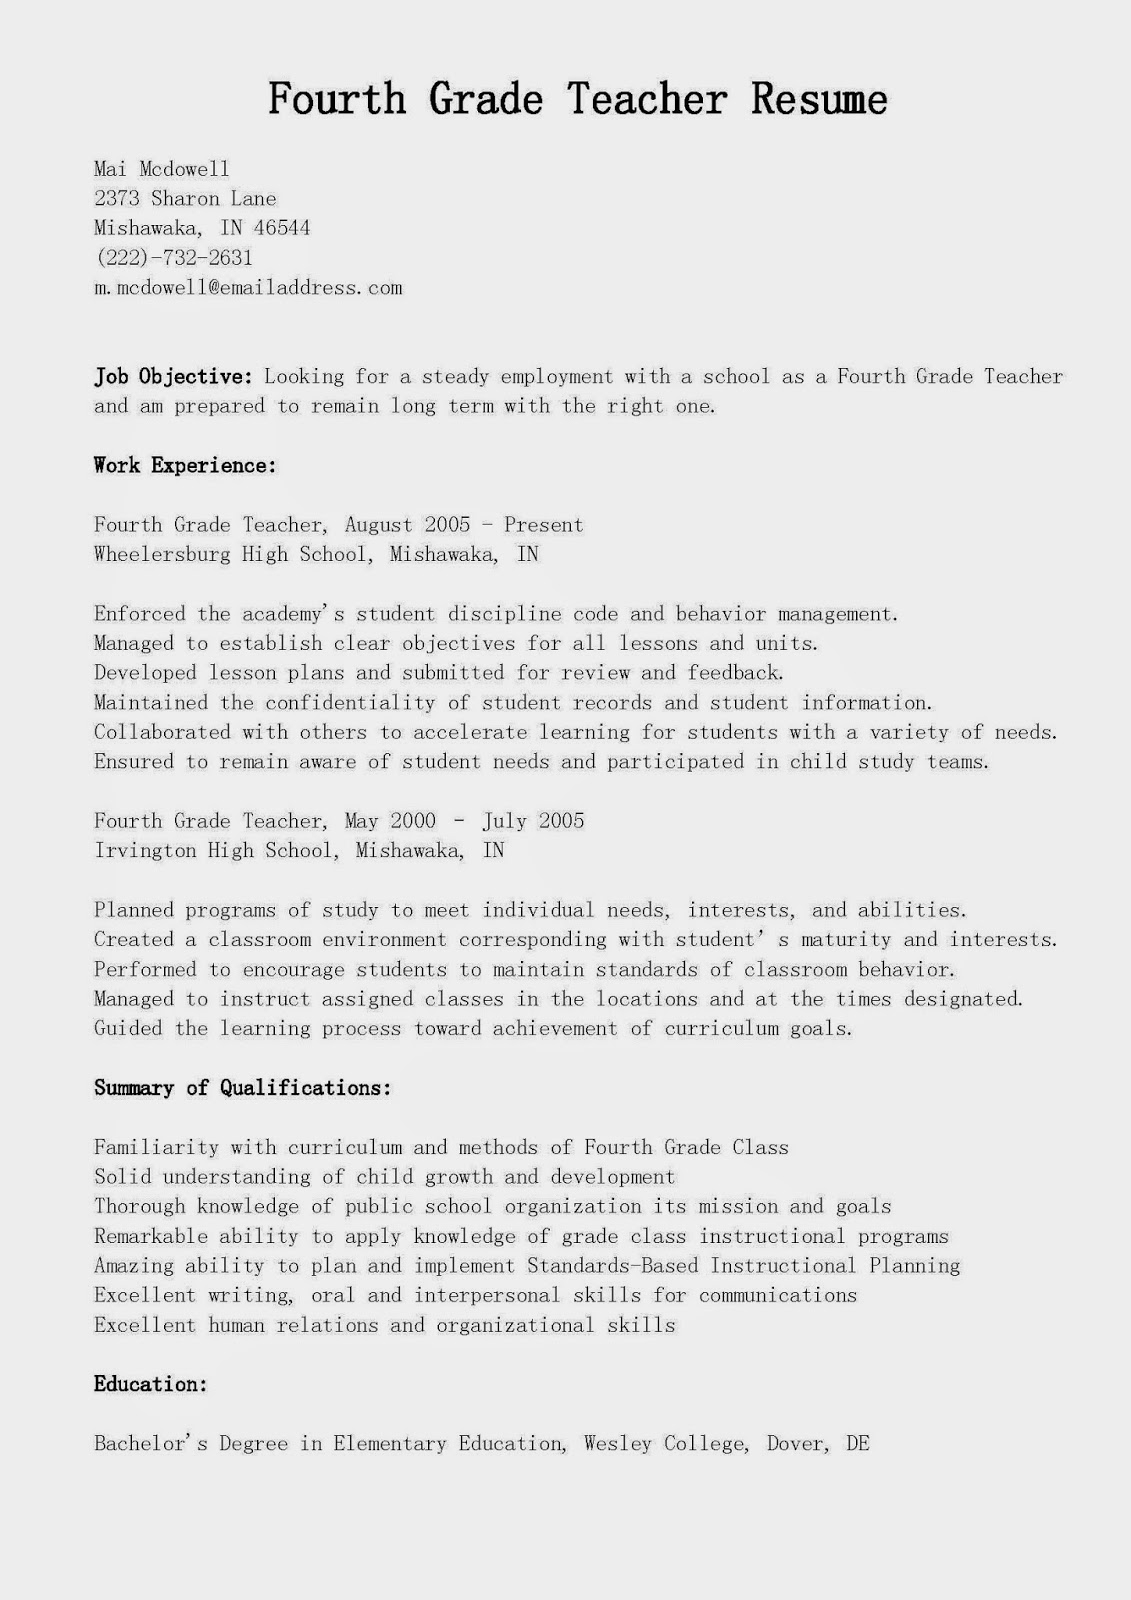 Check Resume Objective Examples Resume Objective Examples For Teachers Aide Buy A College Essay